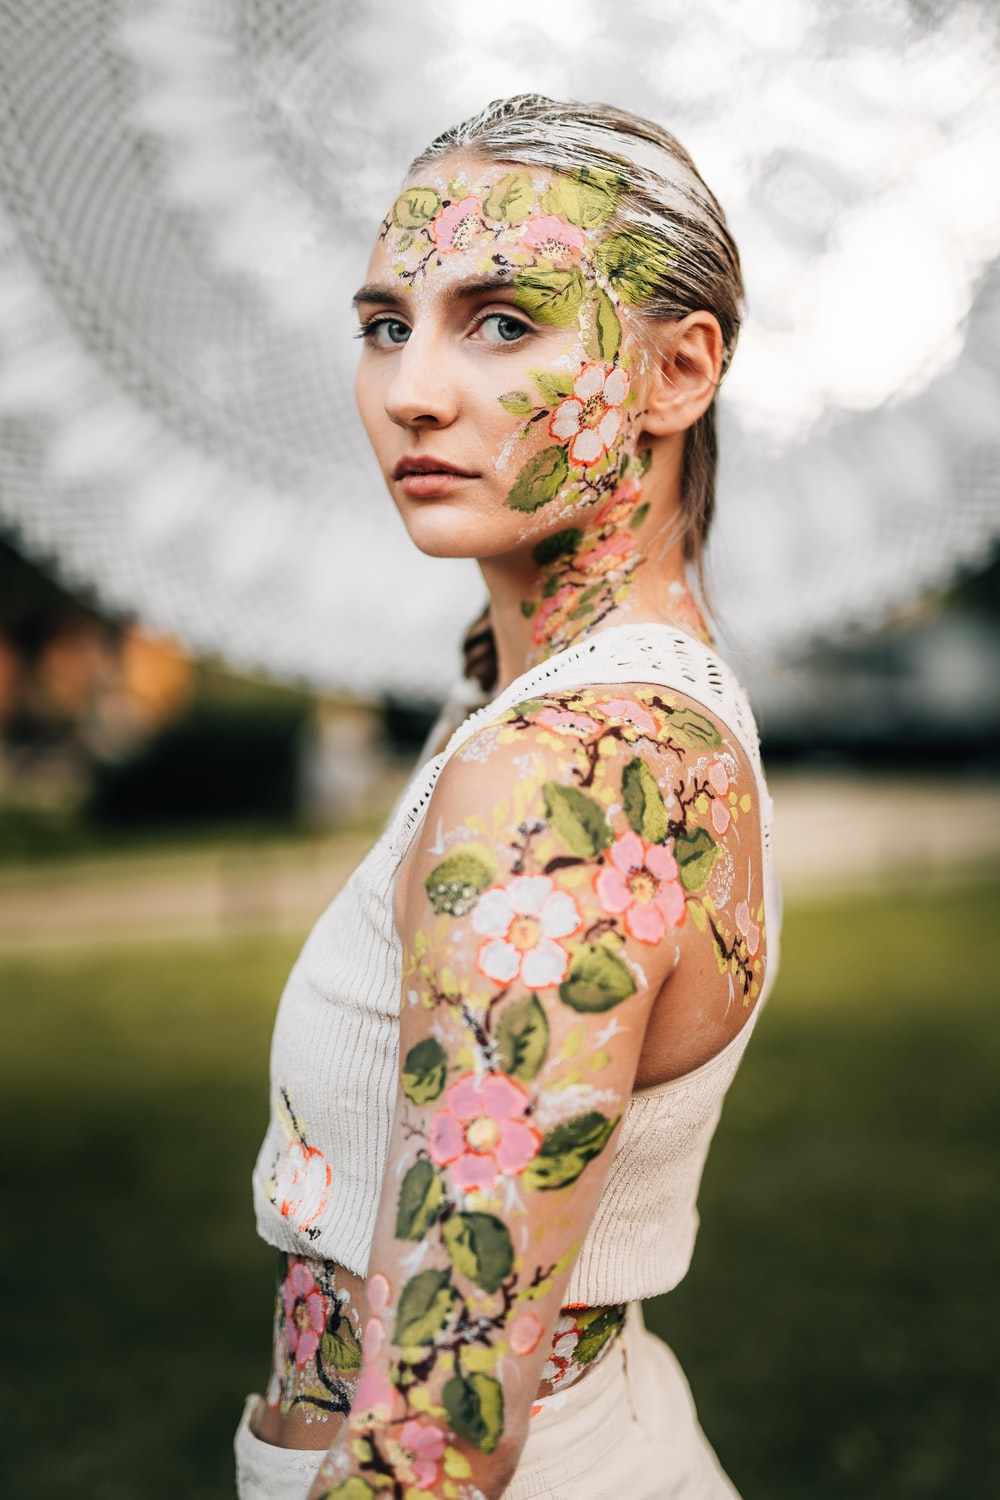 woman in white green and pink floral dress with green flower headdress